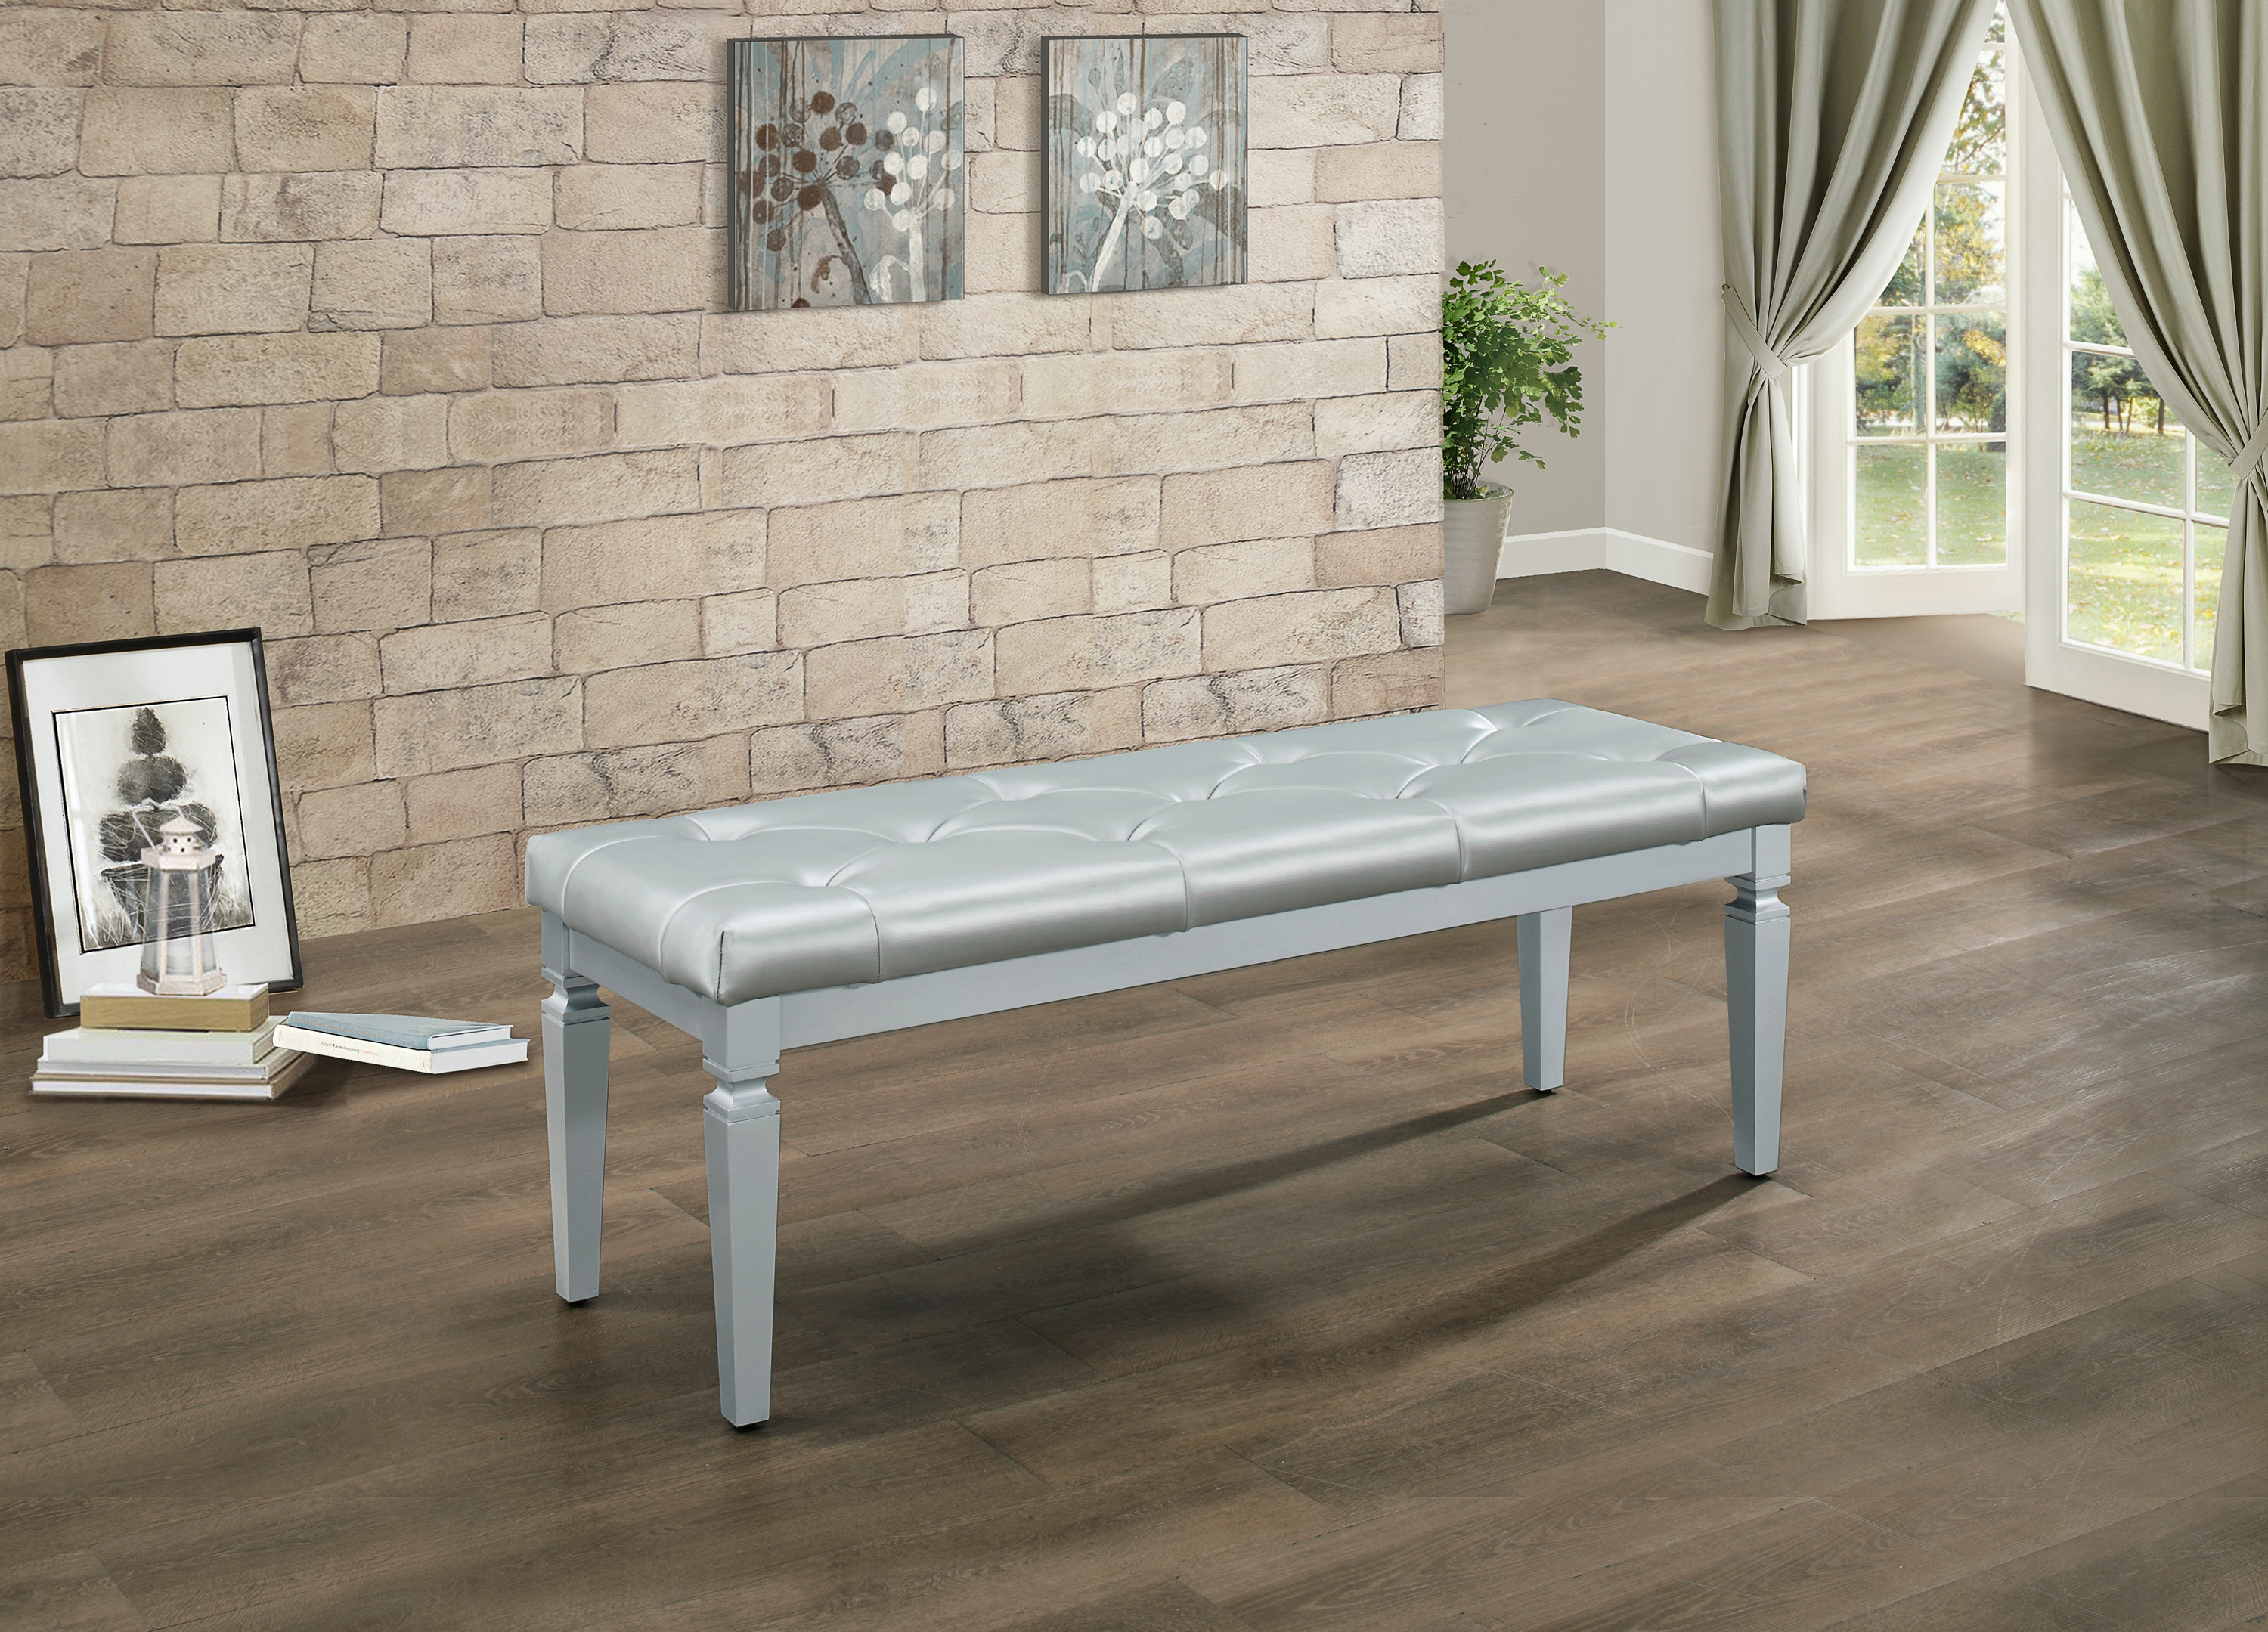 High Point Furniture & Bed Benches | Accent and Decorative Benches | High Point Furniture